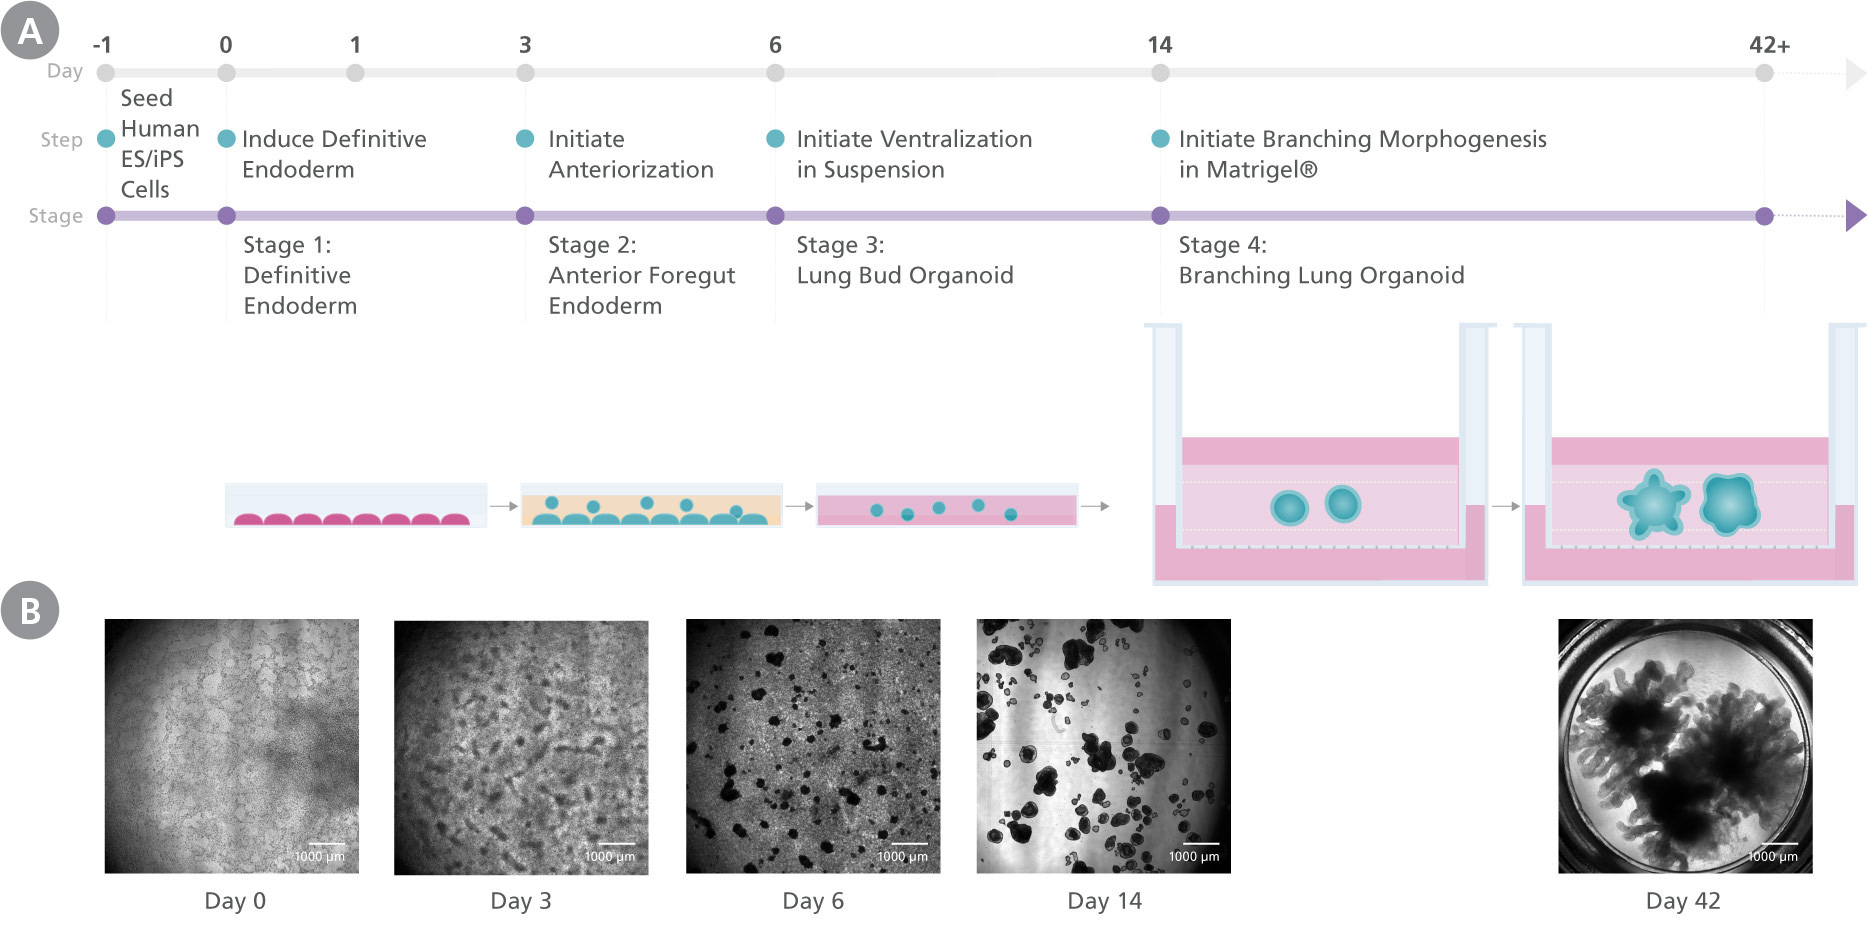 Schematic showing the different stages in the STEMdiff™ Branching Lung Organoid Kit protocol and the representative morpholgy at each stage.